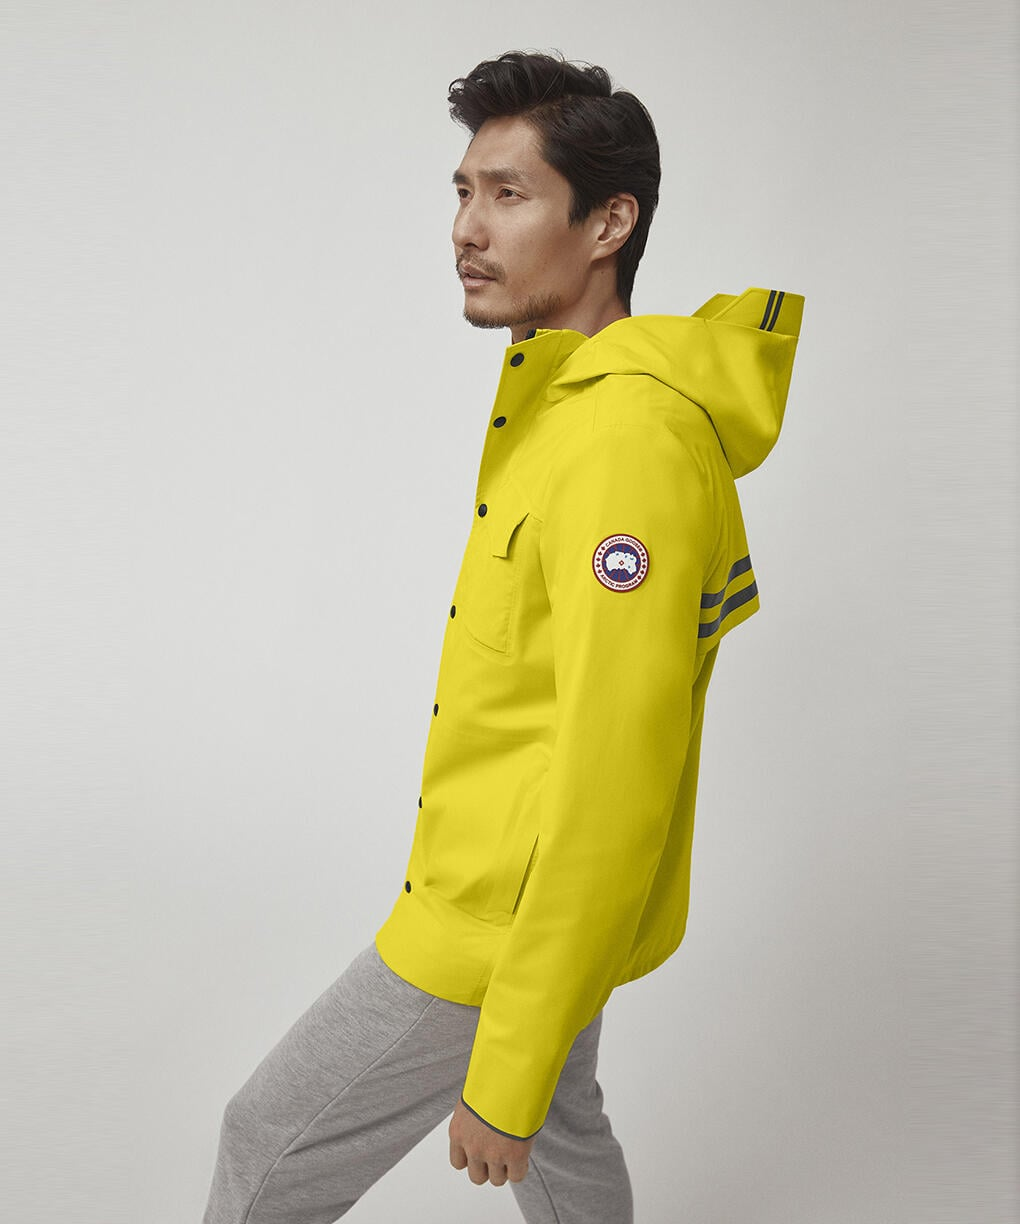 OVERBOARD YELLOW